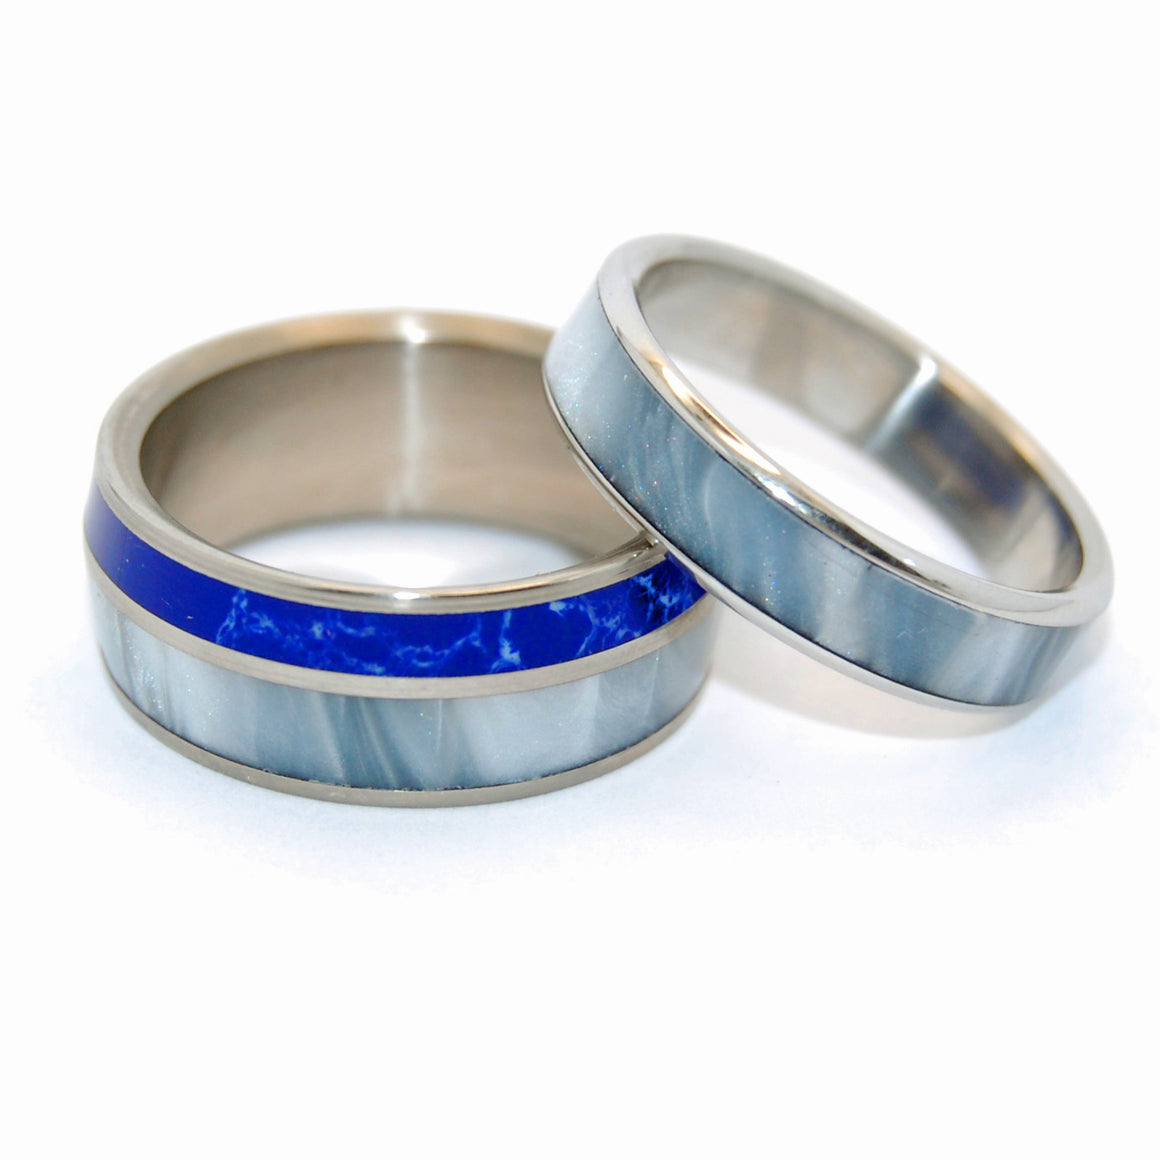 We'll Always Be in the Beautiful Space Below the Fog | His and Hers Titanium Wedding Ring Set - Minter and Richter Designs